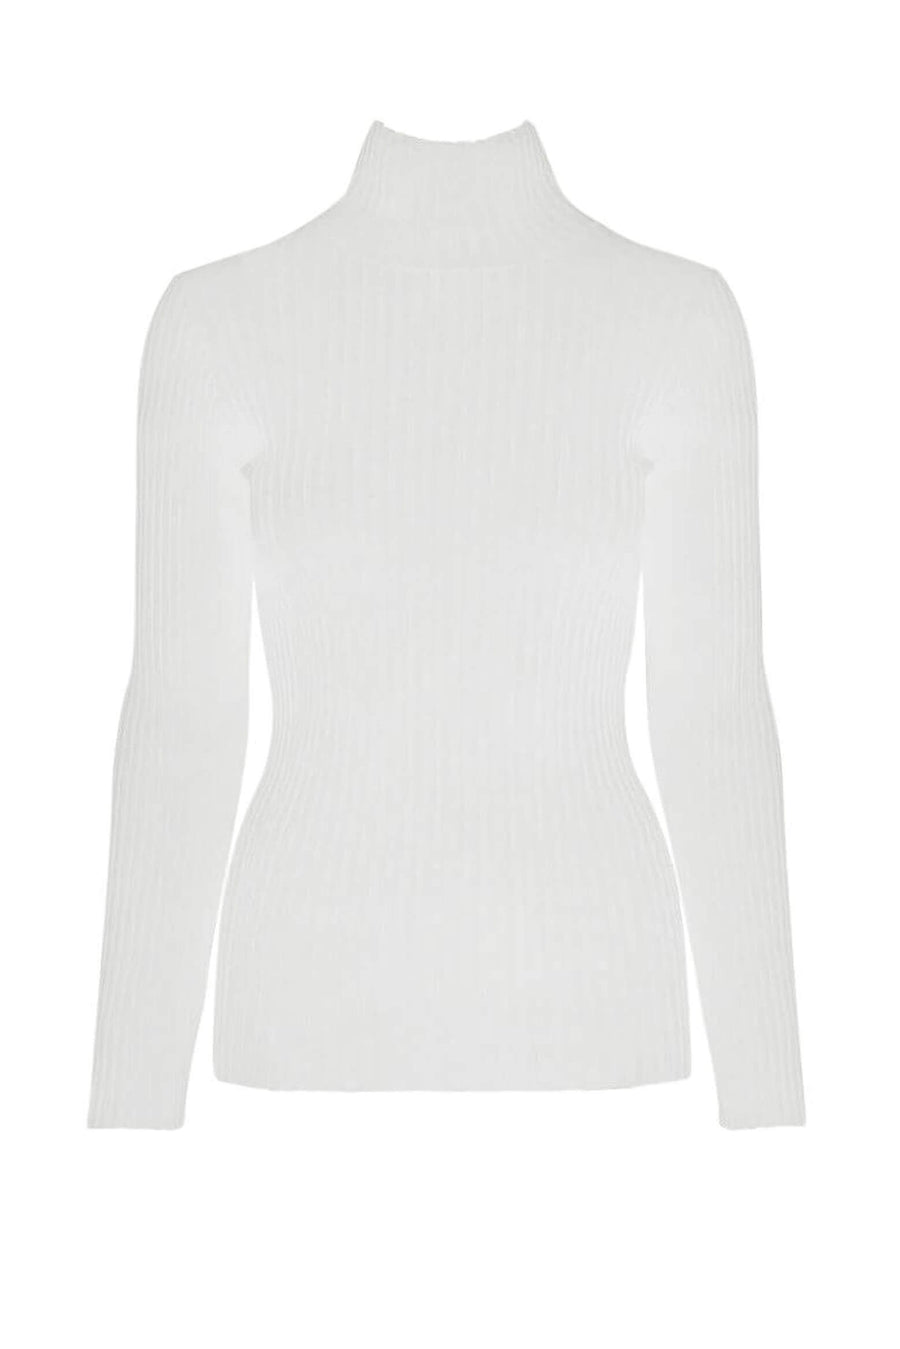 Anine Bing Clare Top in Ivory available at The New Trend